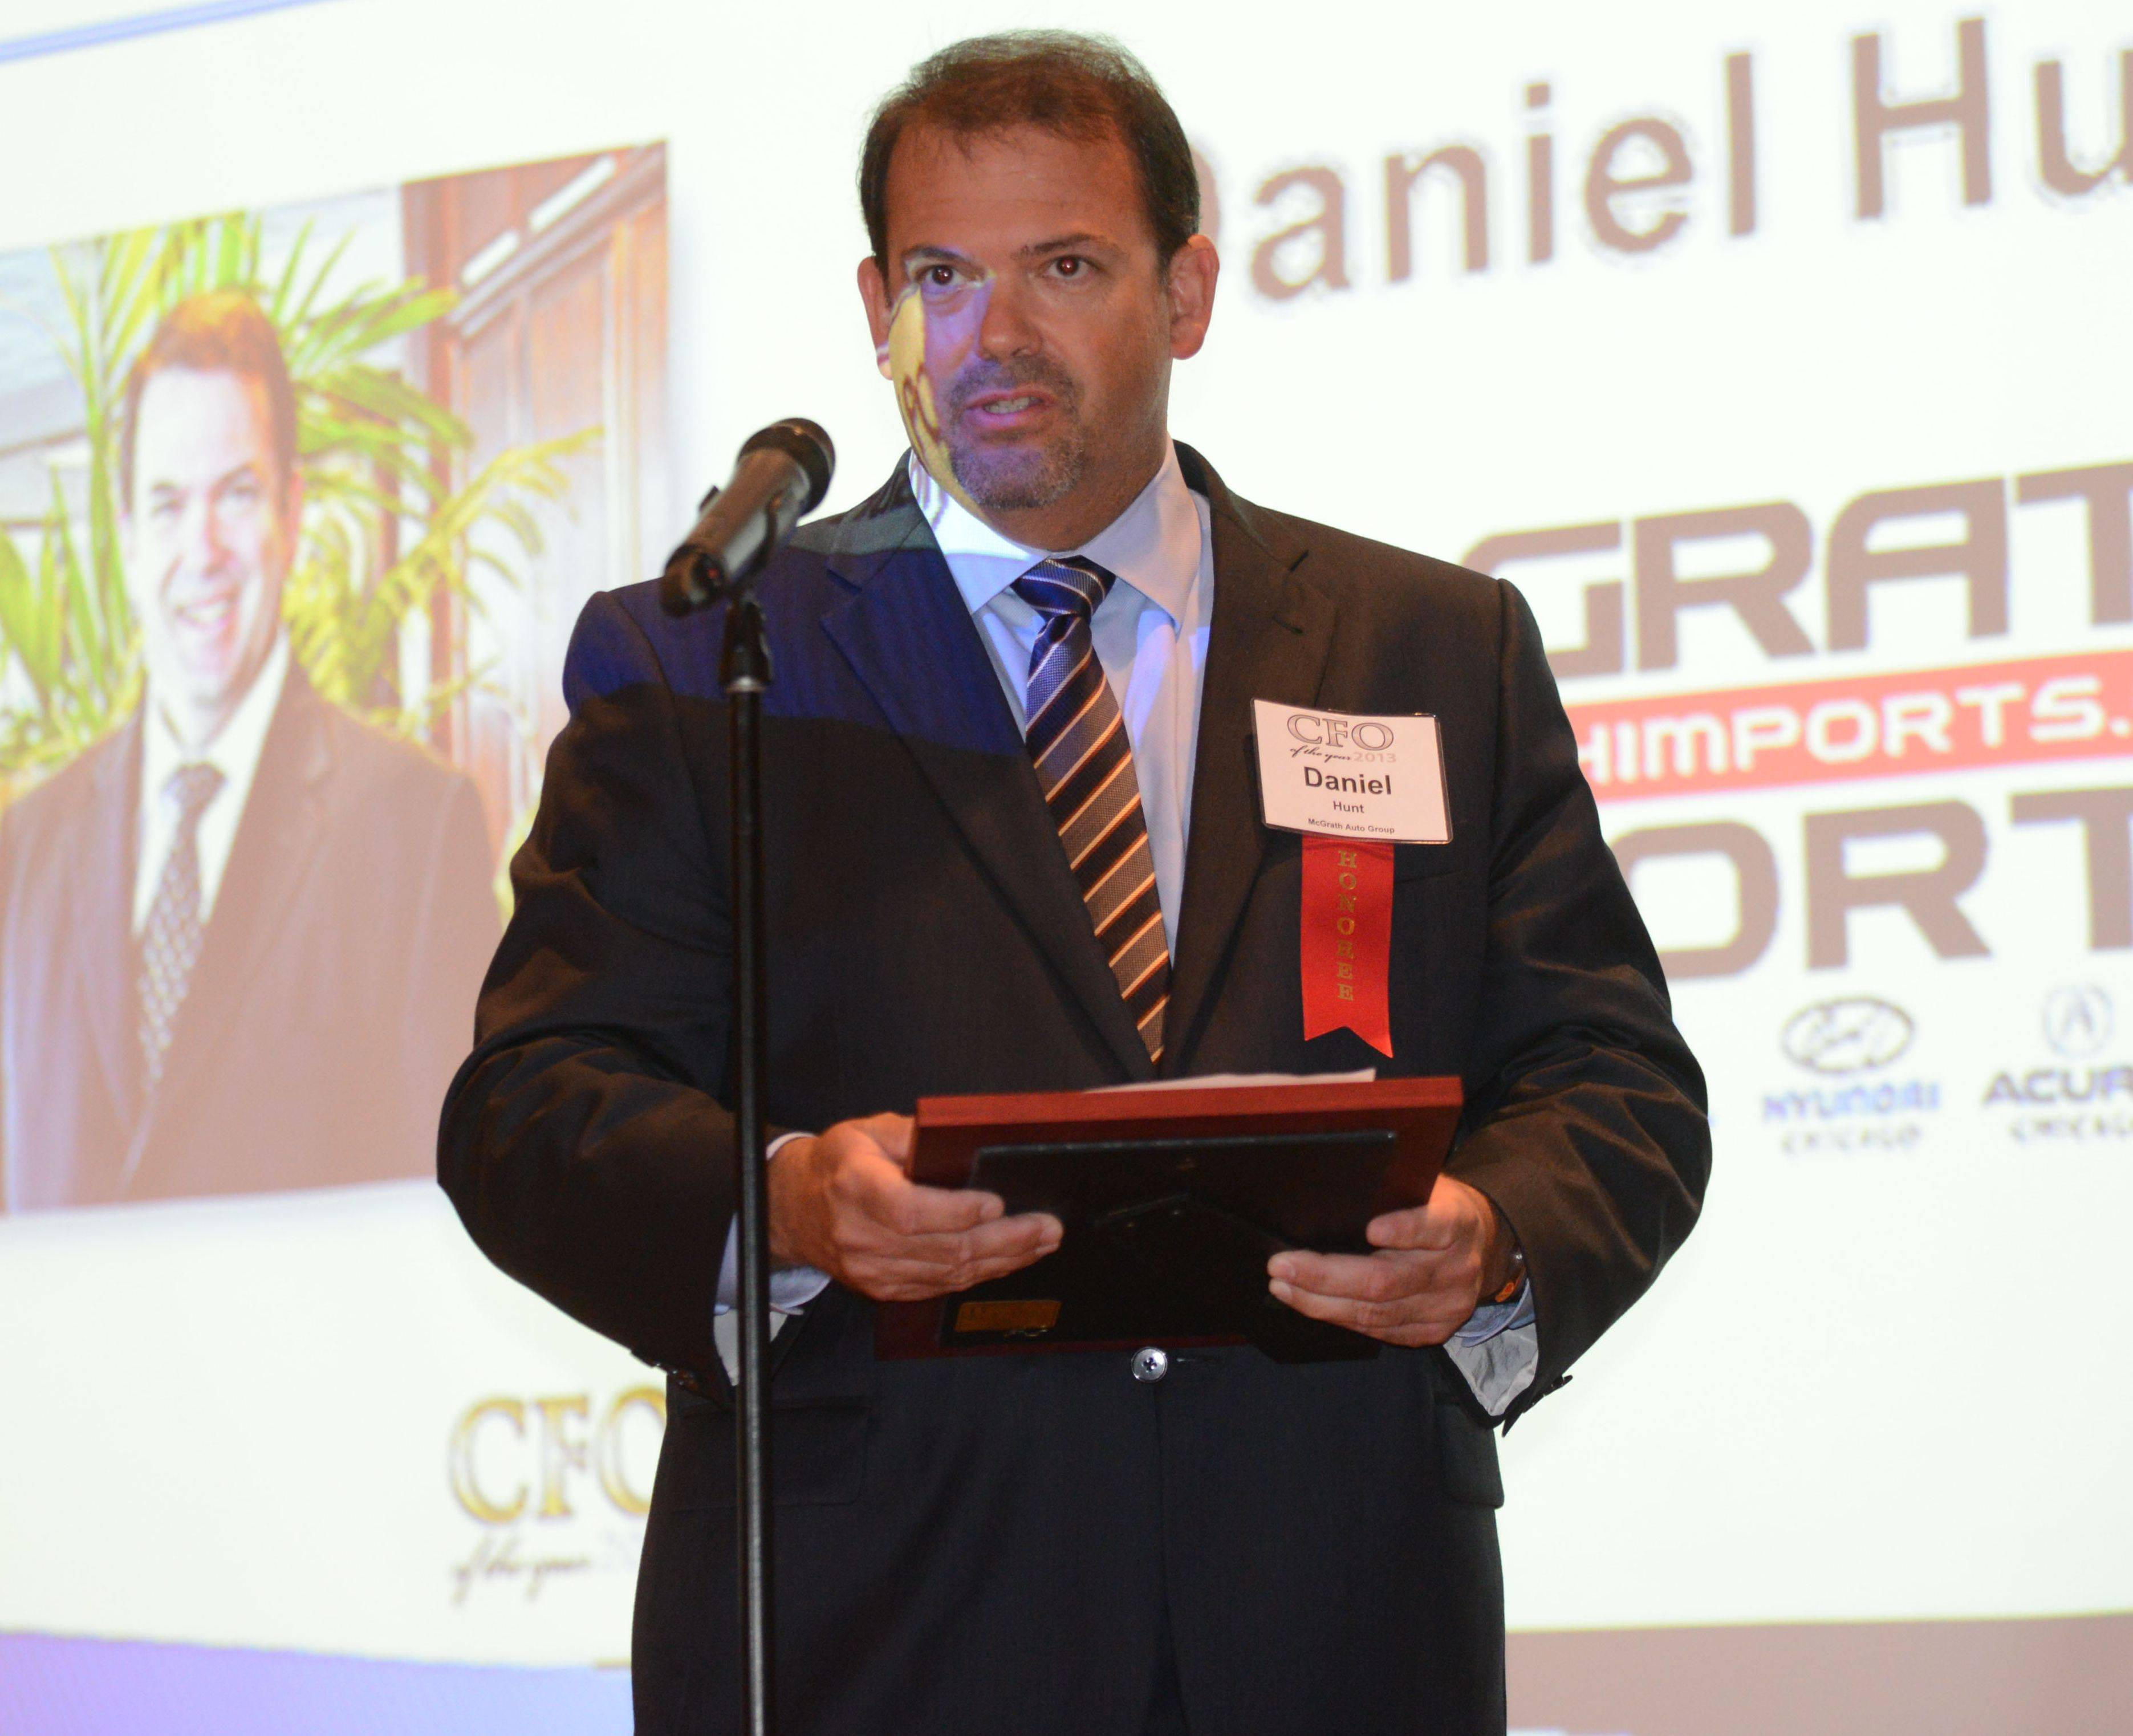 Daniel Hunt of the McGrath Auto Group, Westmont